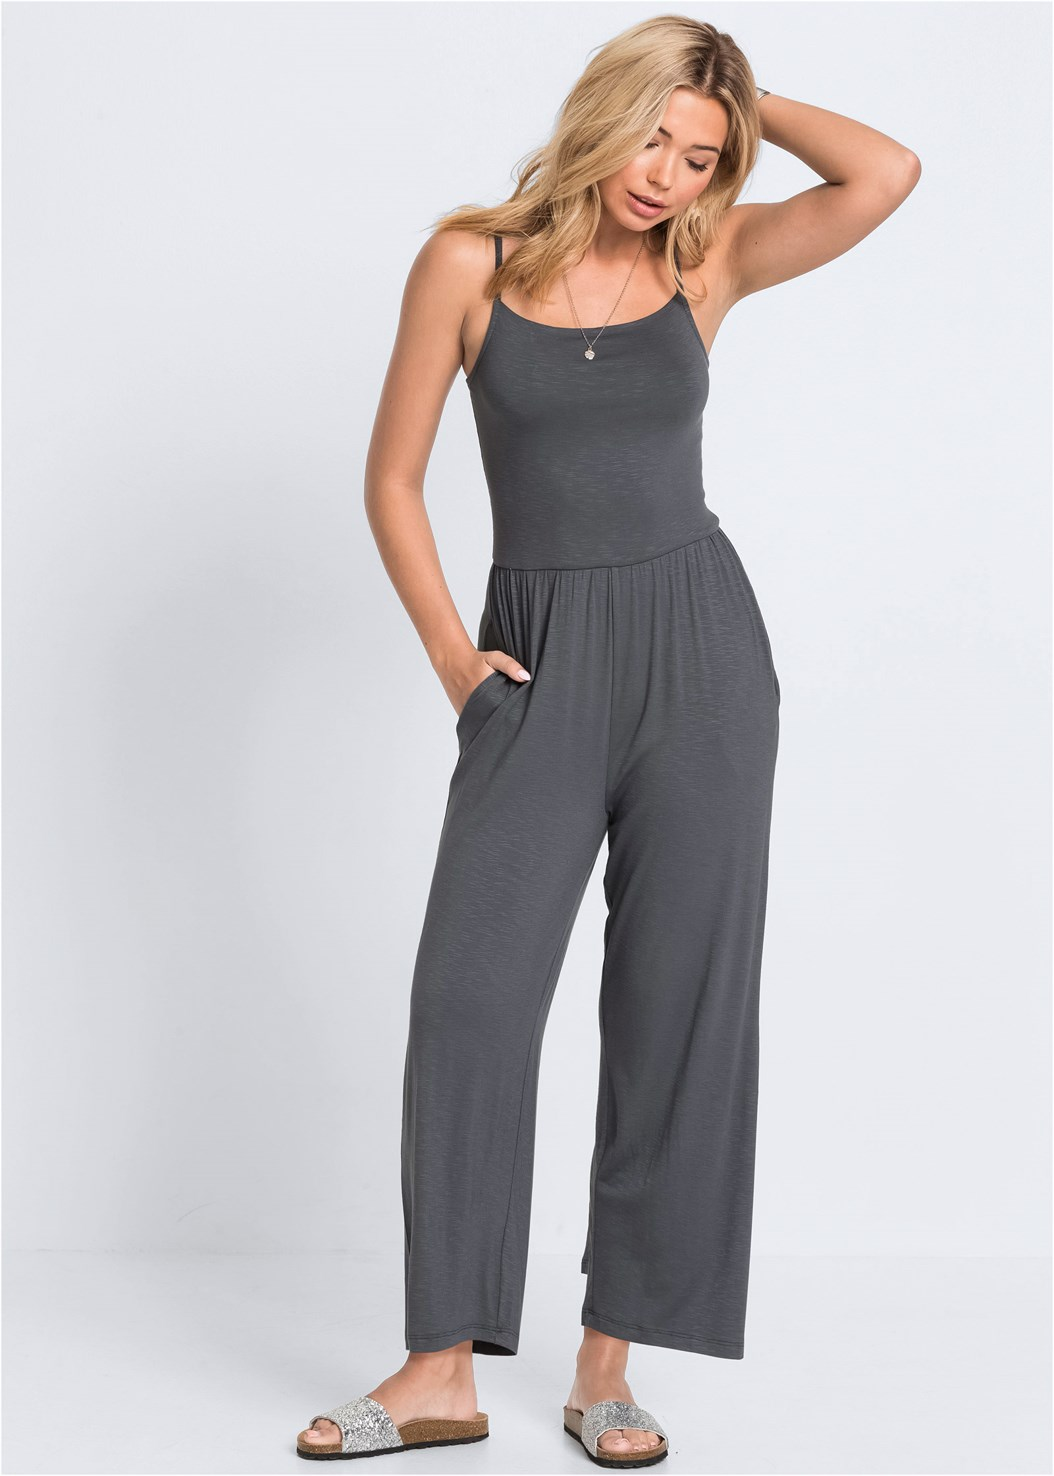 Casual Jumpsuit,Everyday You Strapless Bra,Embellished Slides